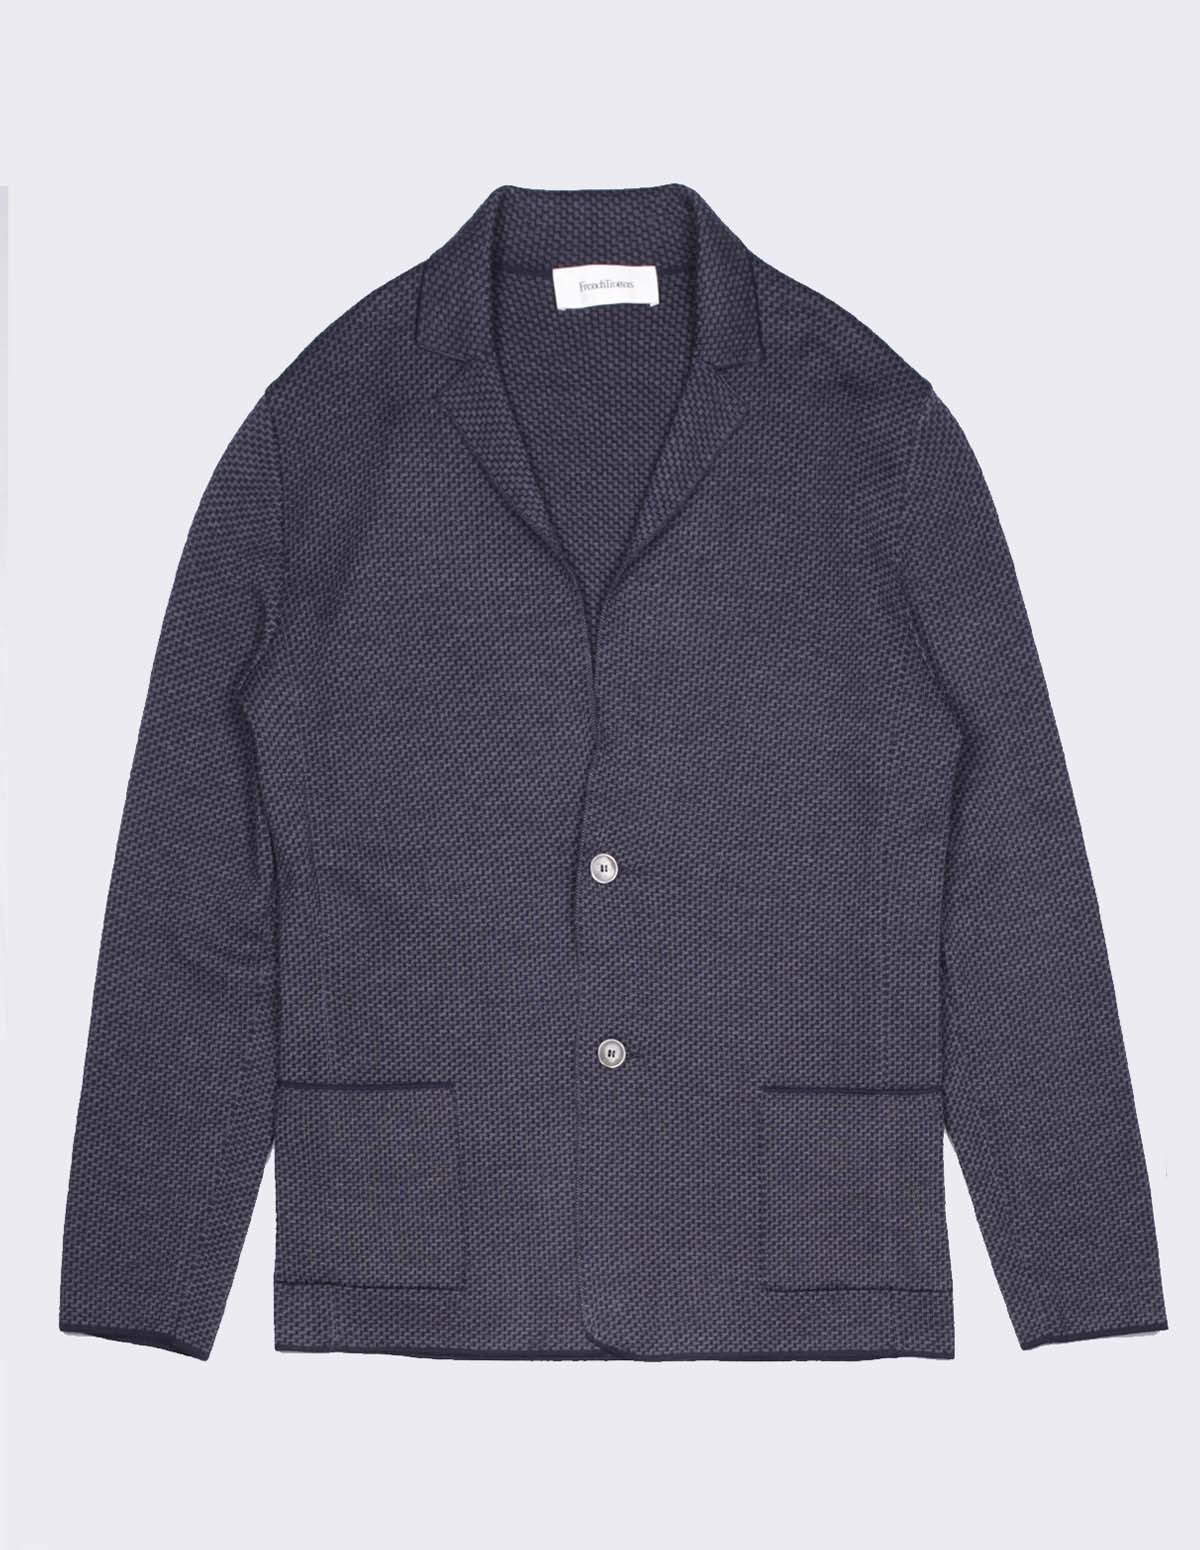 Ft Soft Blazer - BLUE/GREY